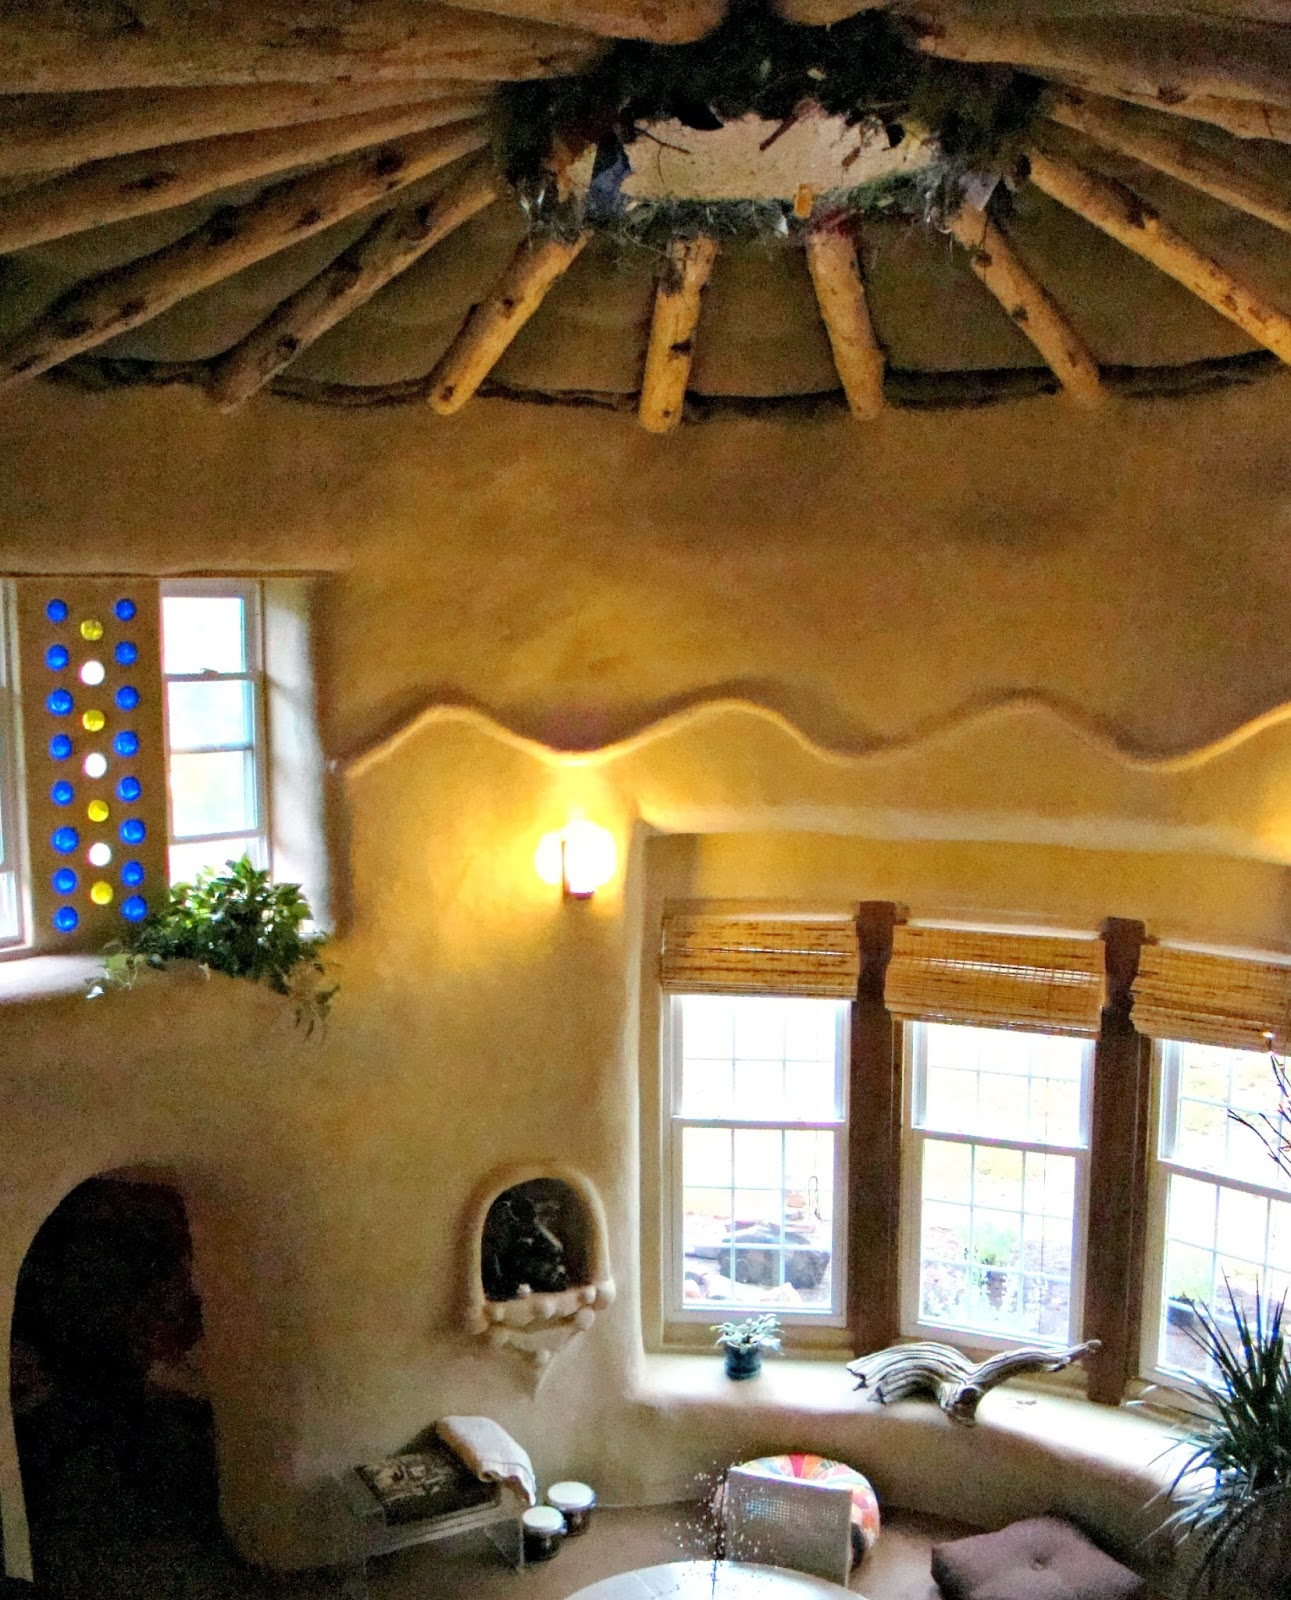 Bamboo interior design natural building blog - Strawbale Studio Built Mostly With Workshops Sweat Equity By The Owners Less Expensive With A Hand Built Aesthetic More Project Pics Here Beth S